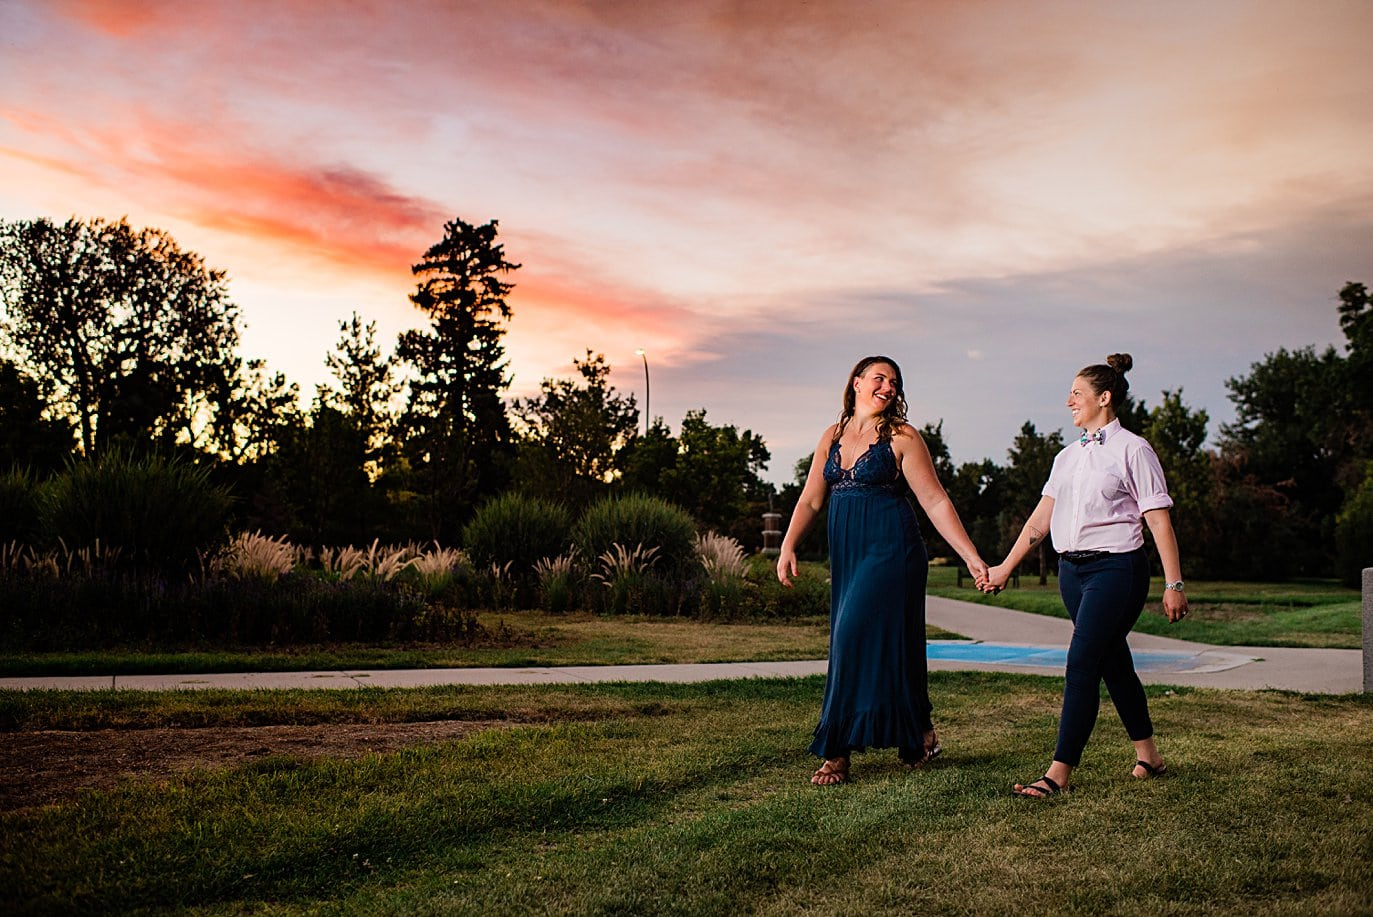 two brides walk hand in hand at sunset after proposal in City Park Denver by Denver proposal photographer Jennie Crate